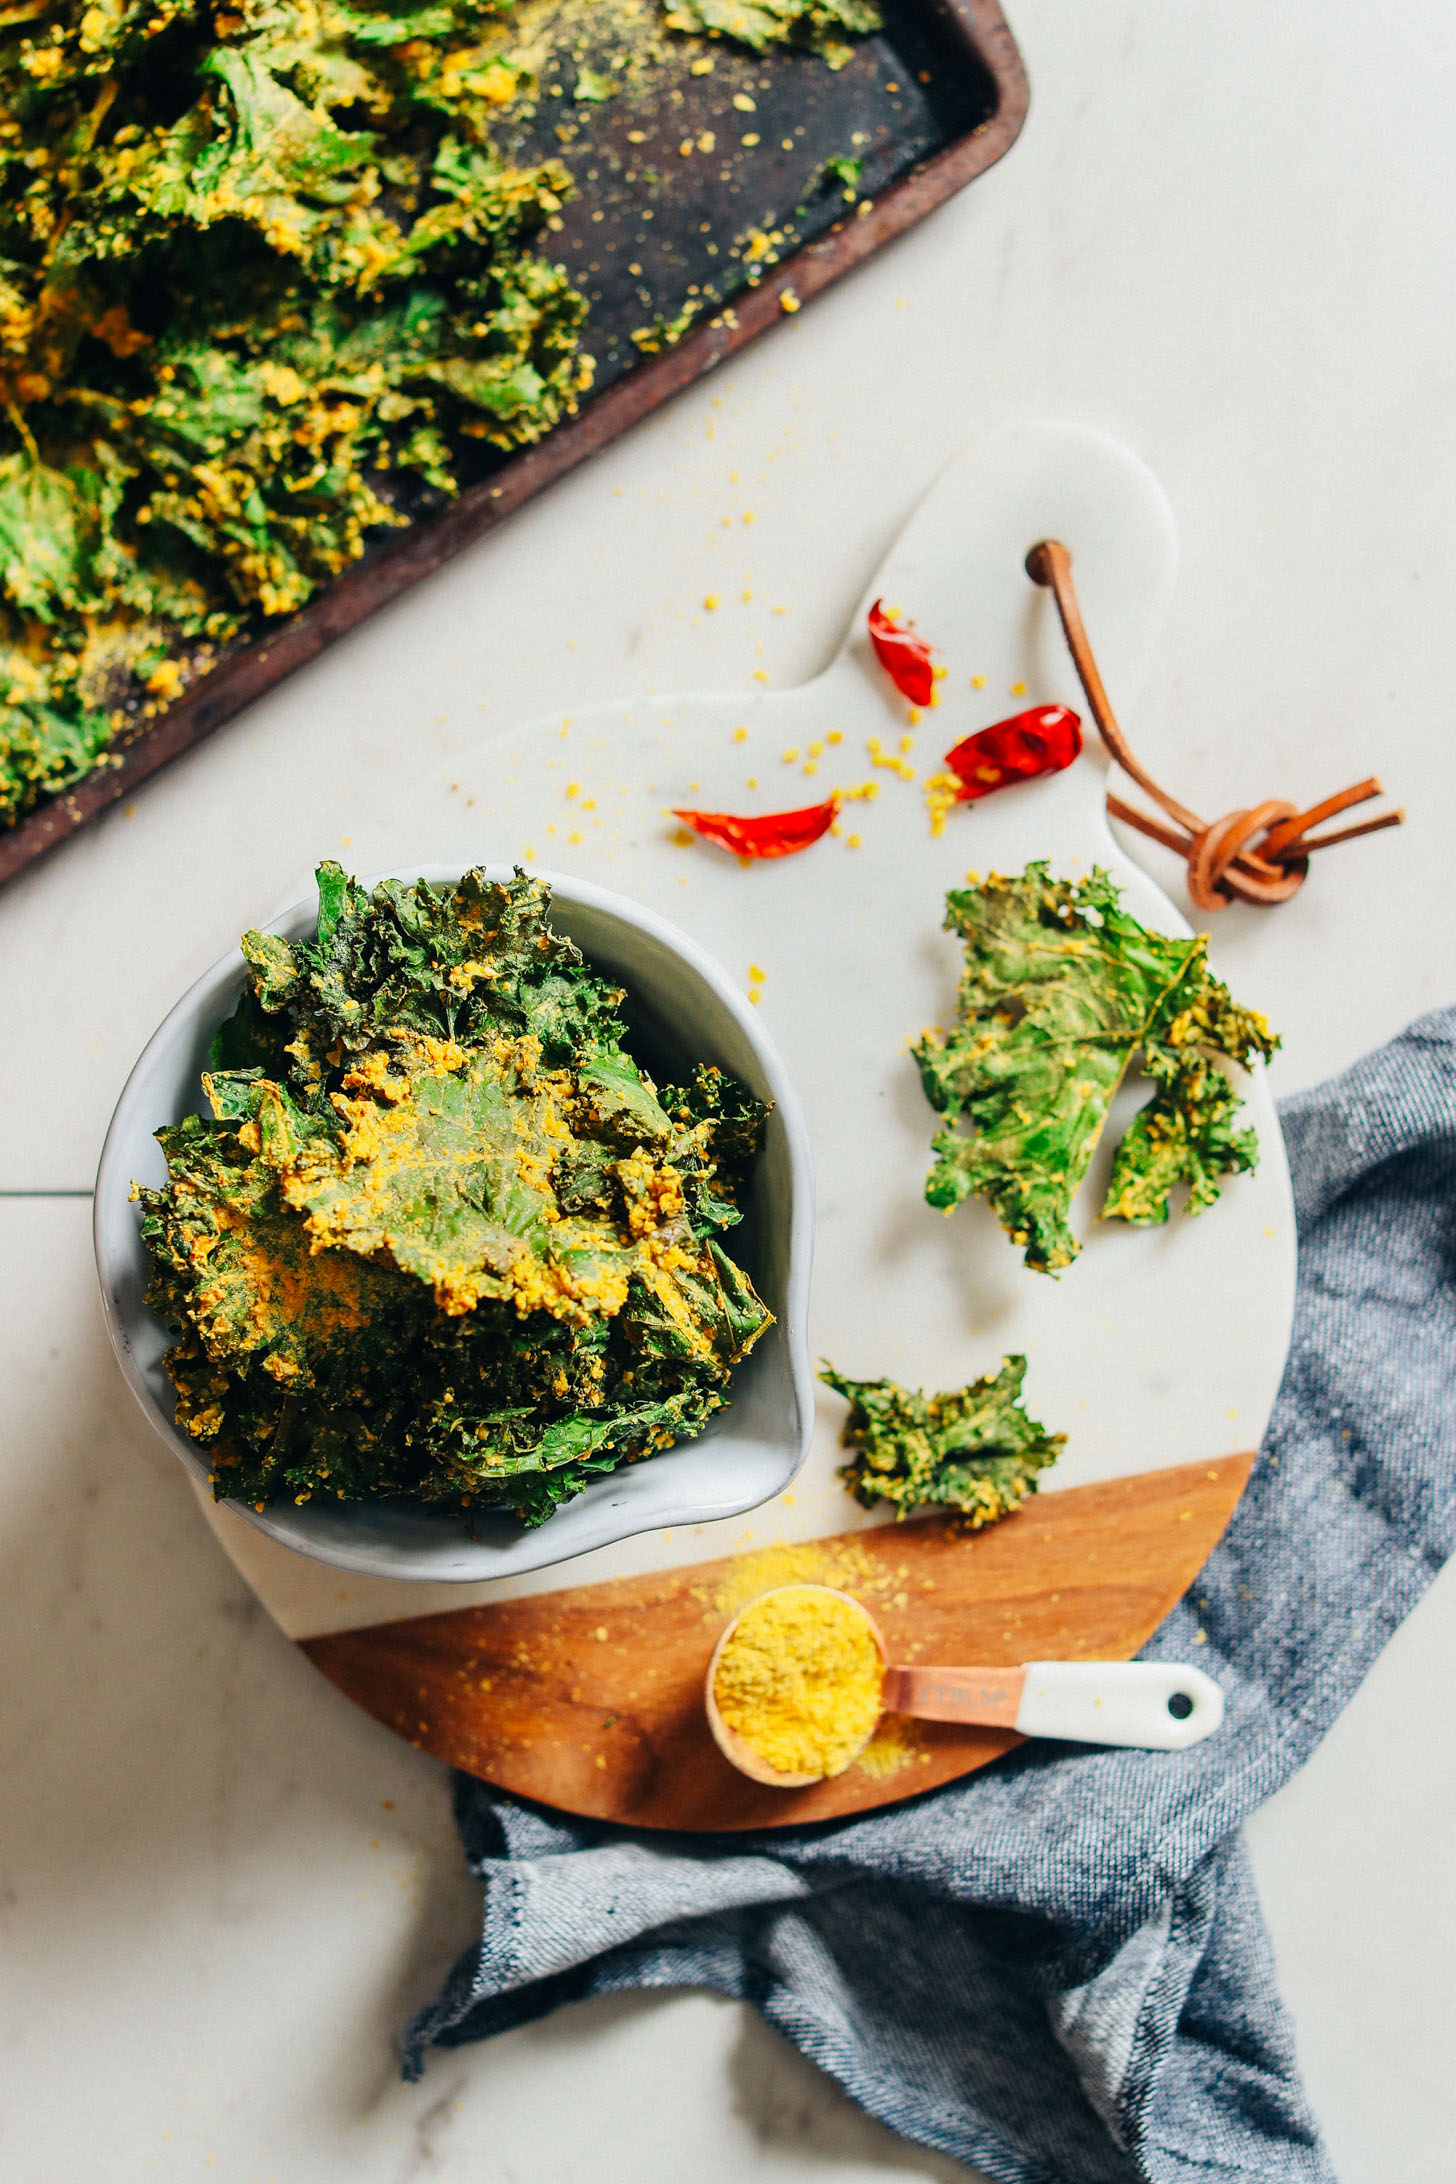 Marble cutting board with a bowl of Crispy Baked Kale Chips coated with Sunflower Seed Cheeze